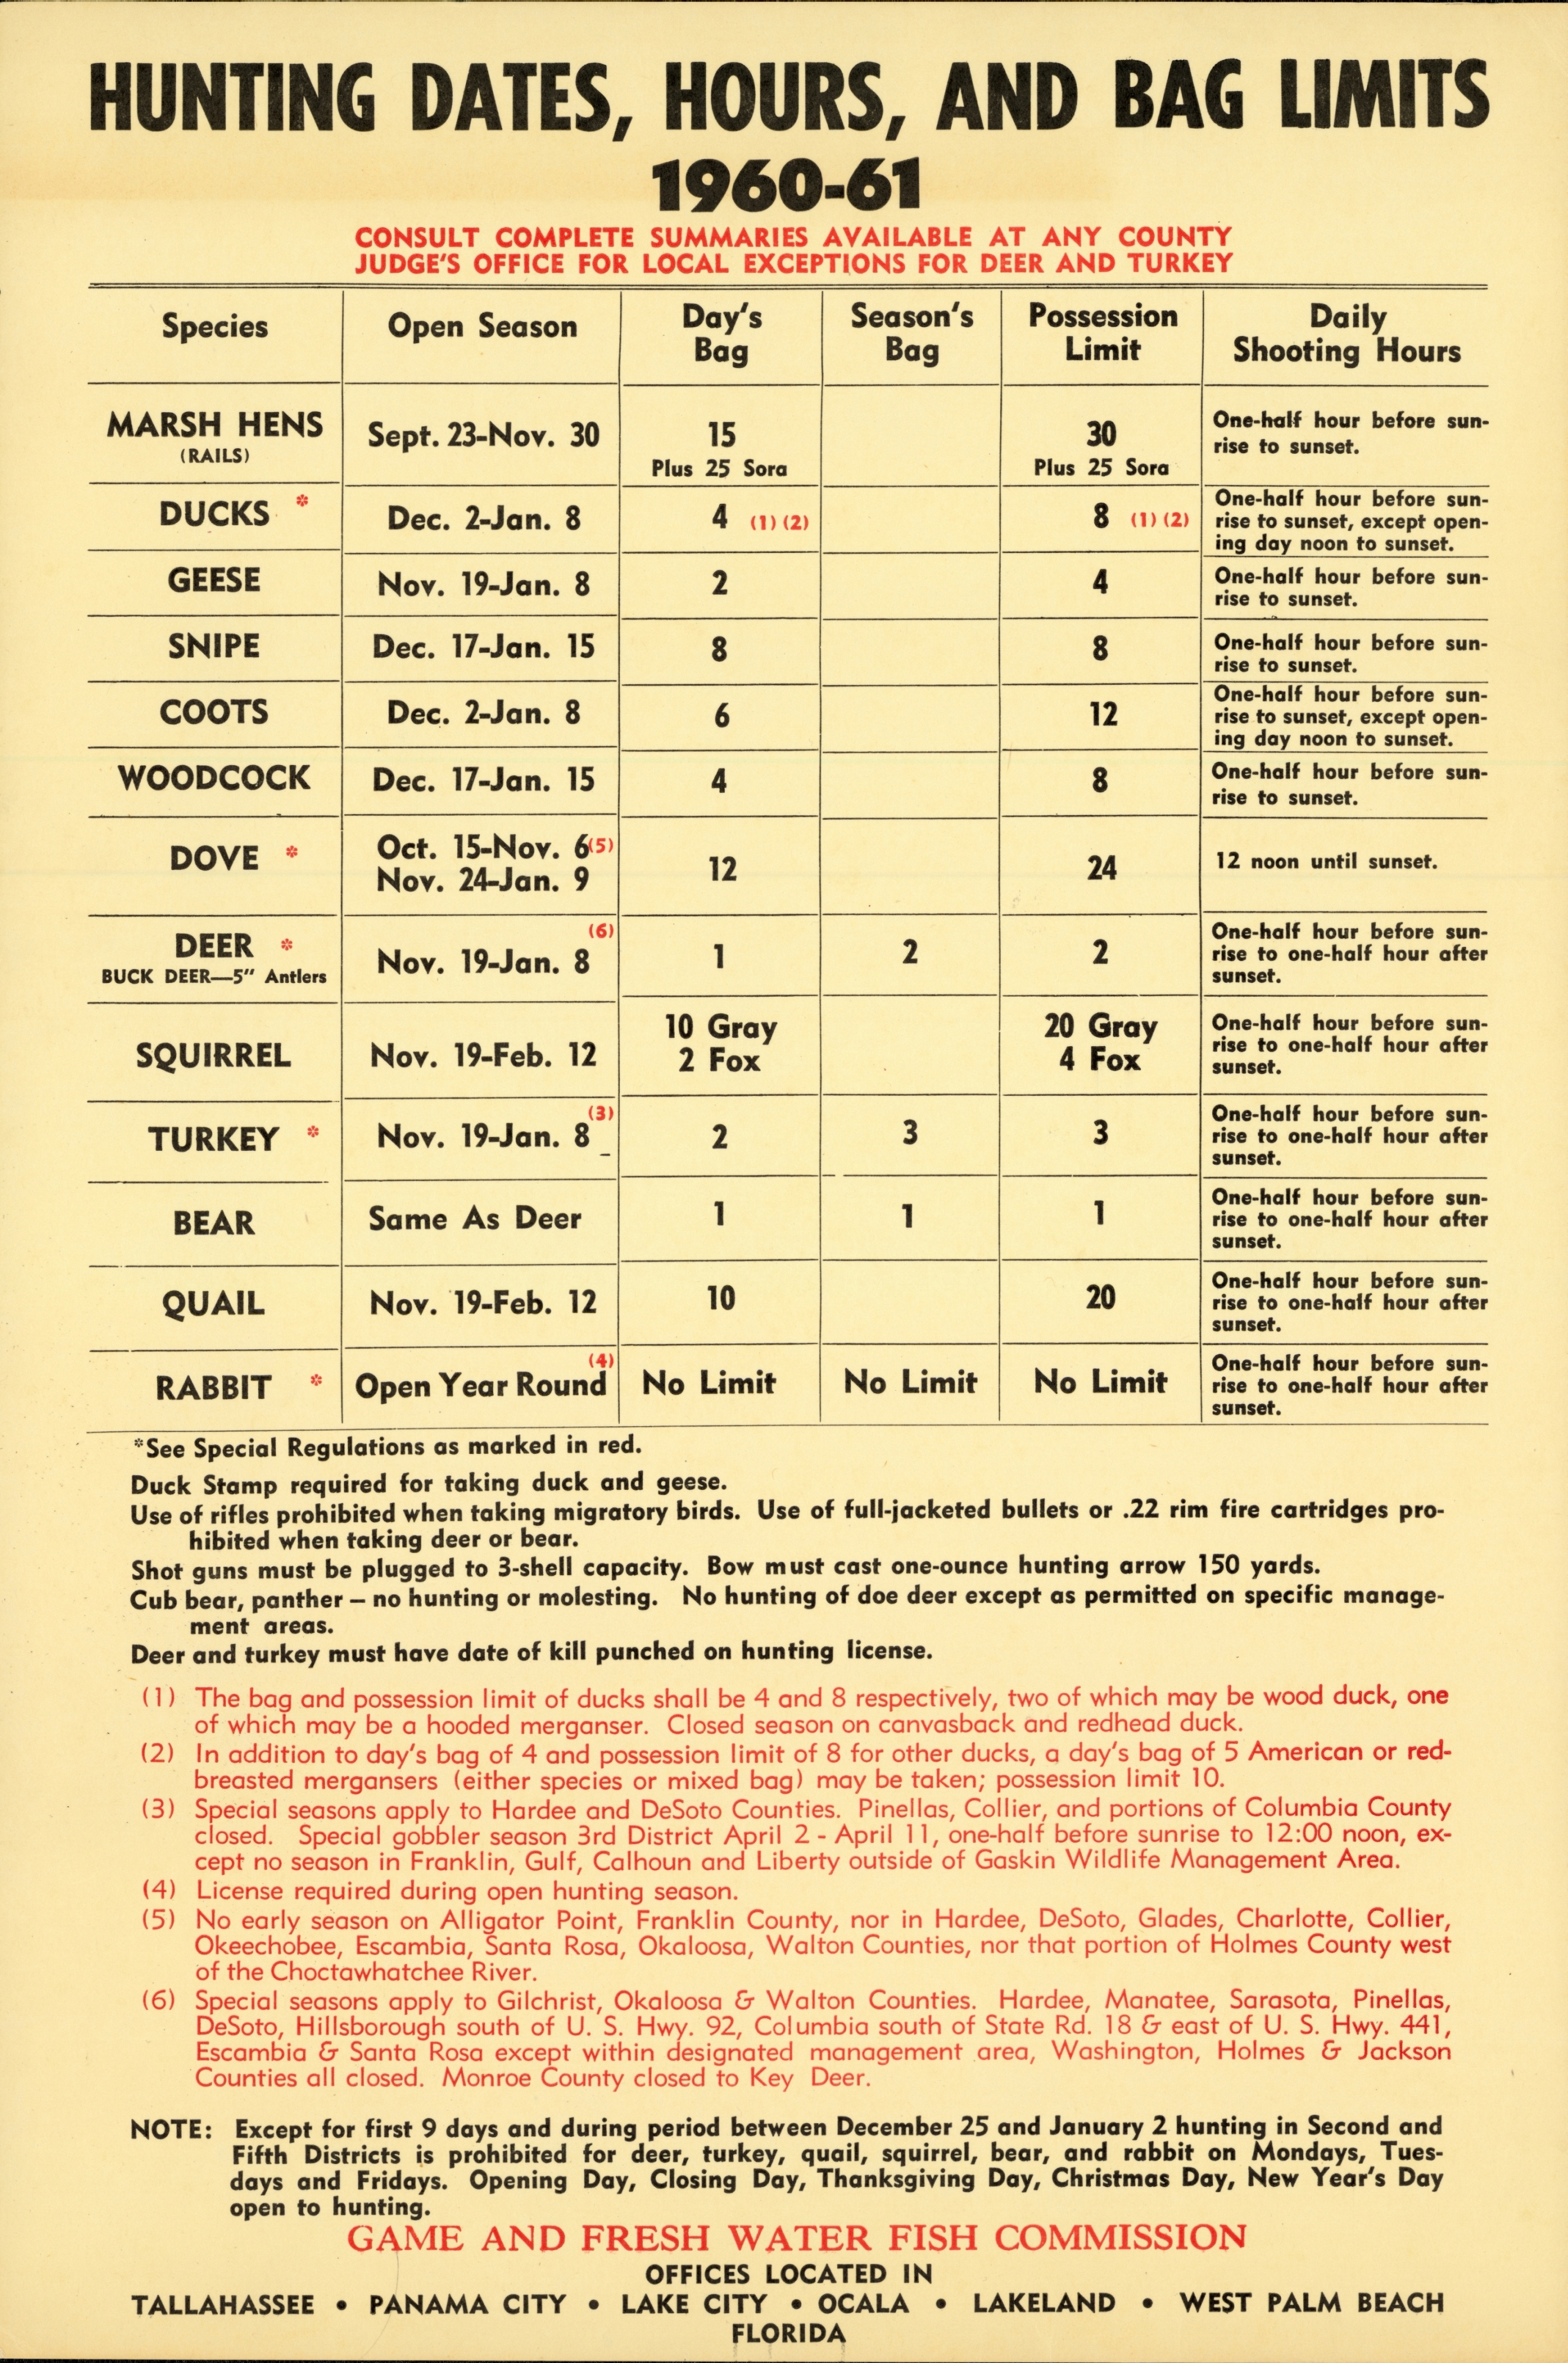 Florida hunting seasons and bag limits, 1960-61.